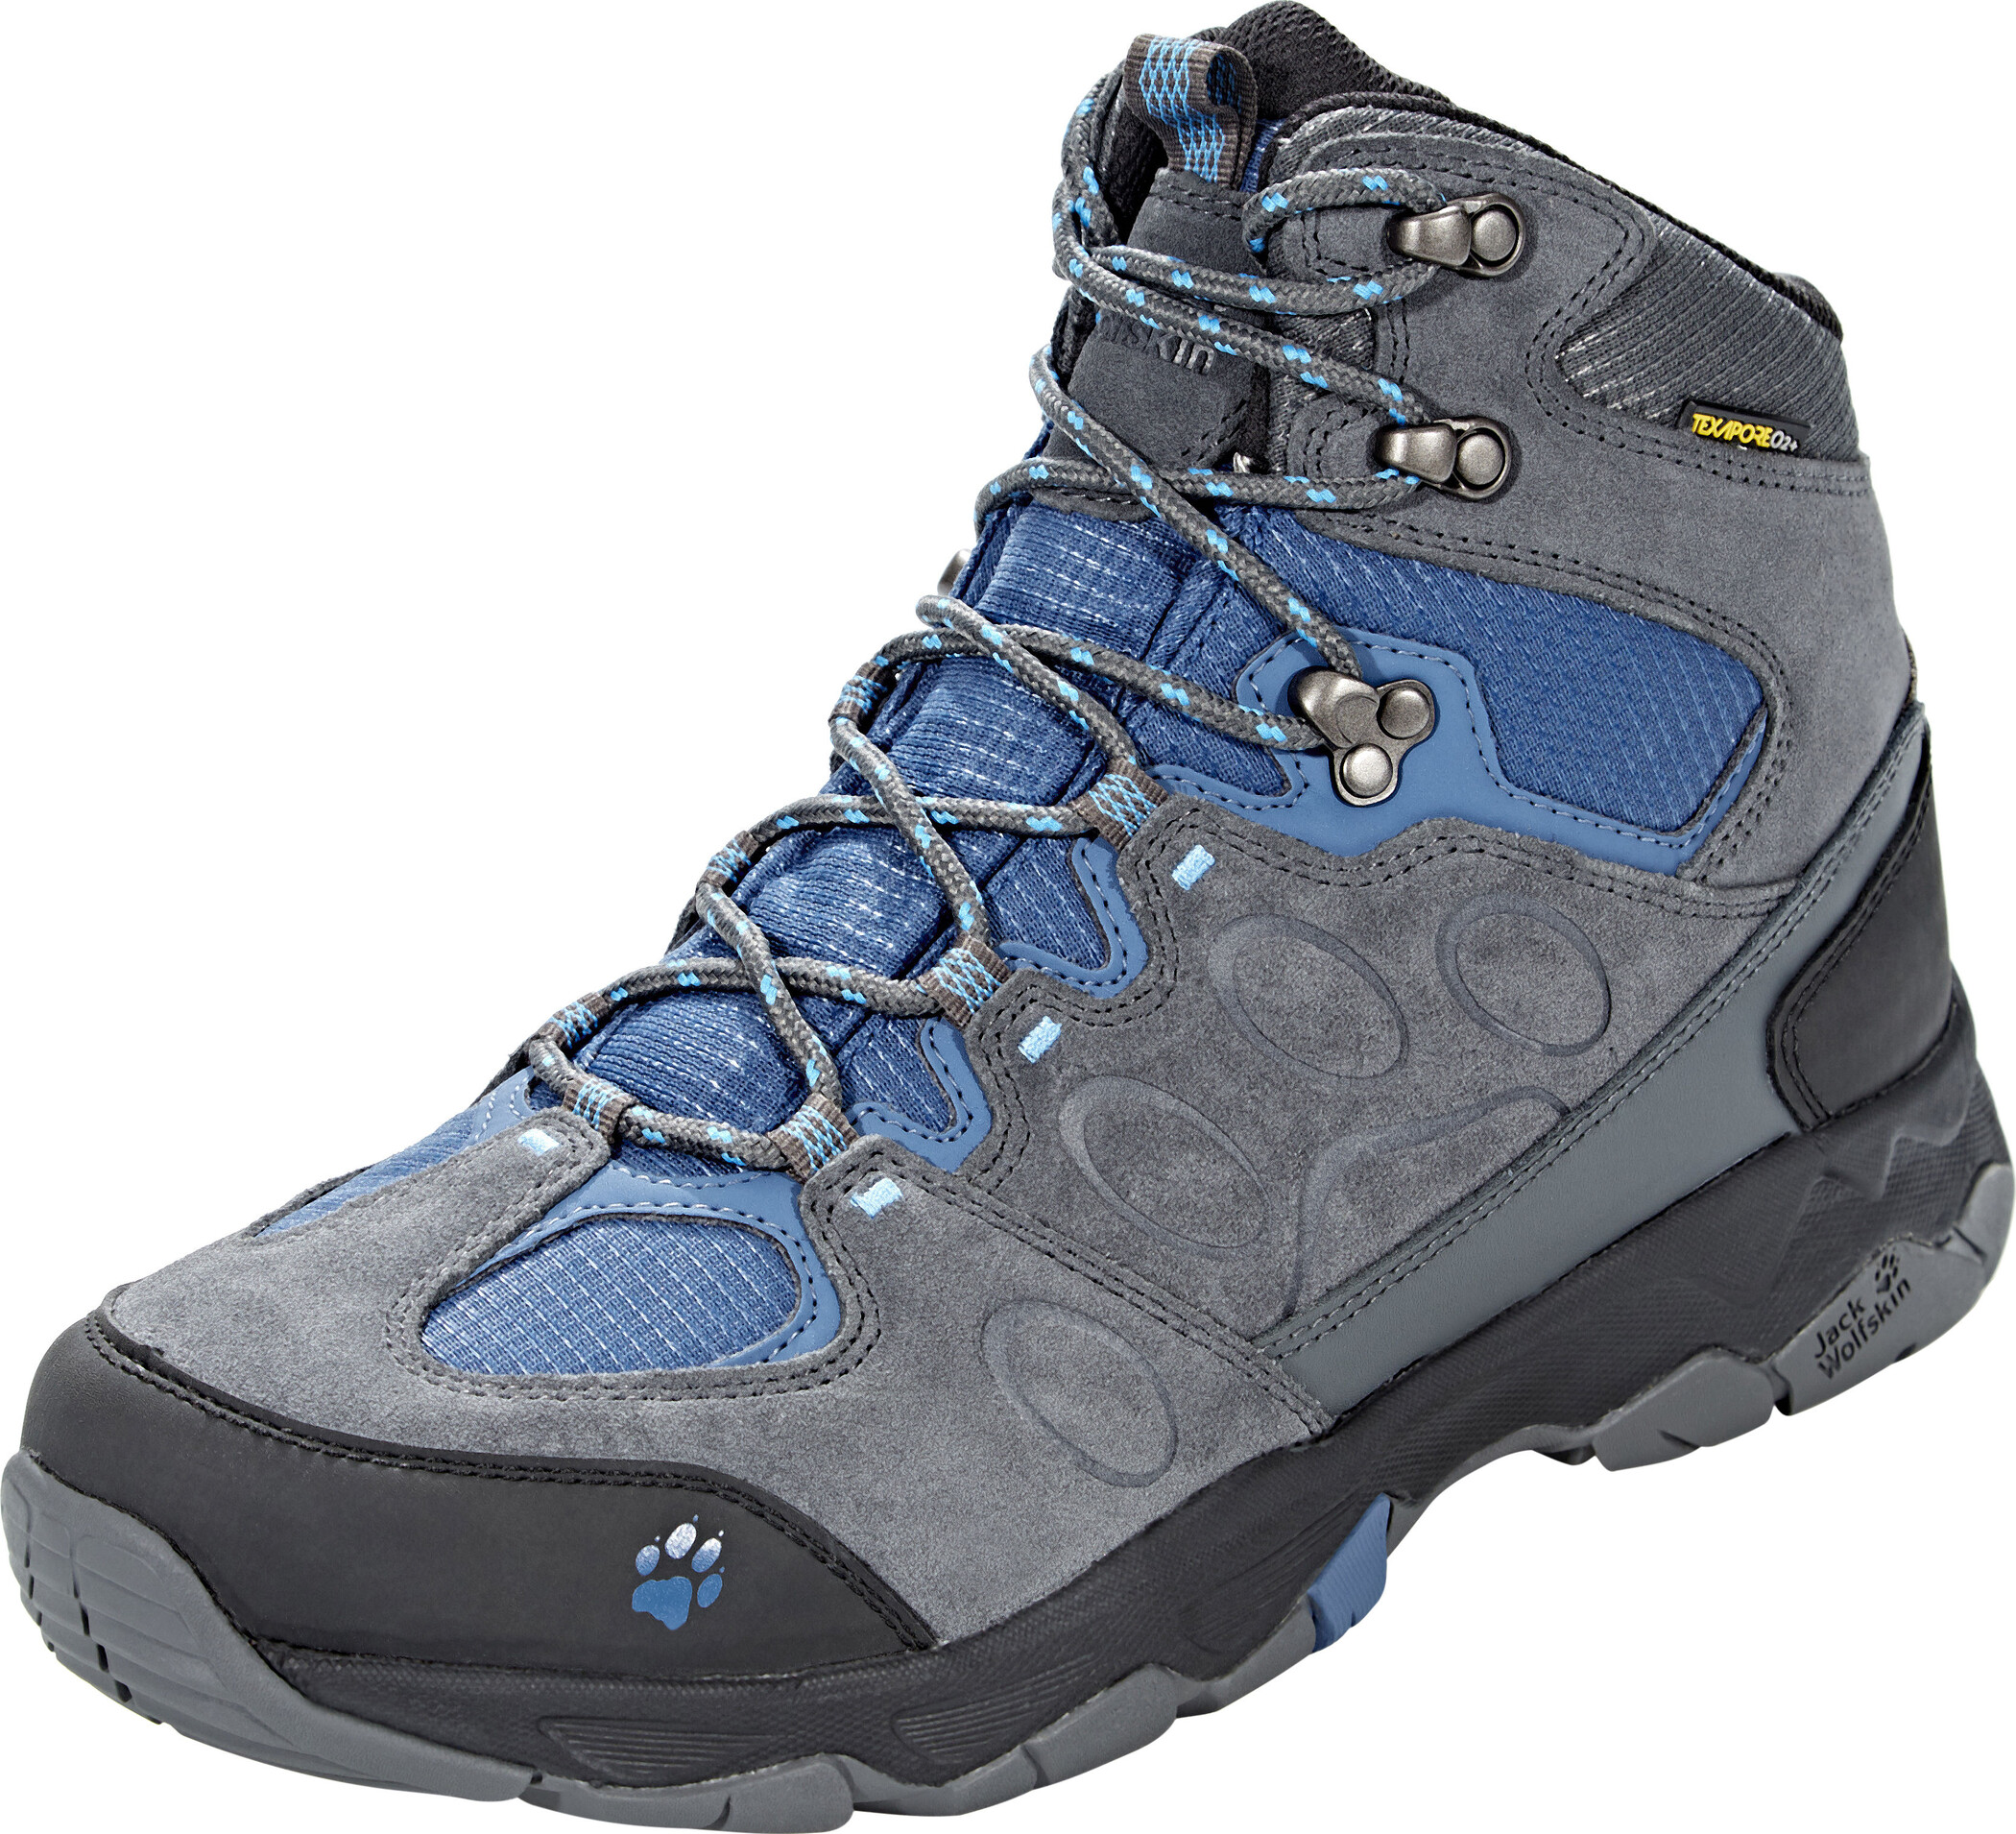 e574530162 Jack Wolfskin MTN Attack 5 Texapore Hiking Shoes Mid Cut Men ocean wave.jpg